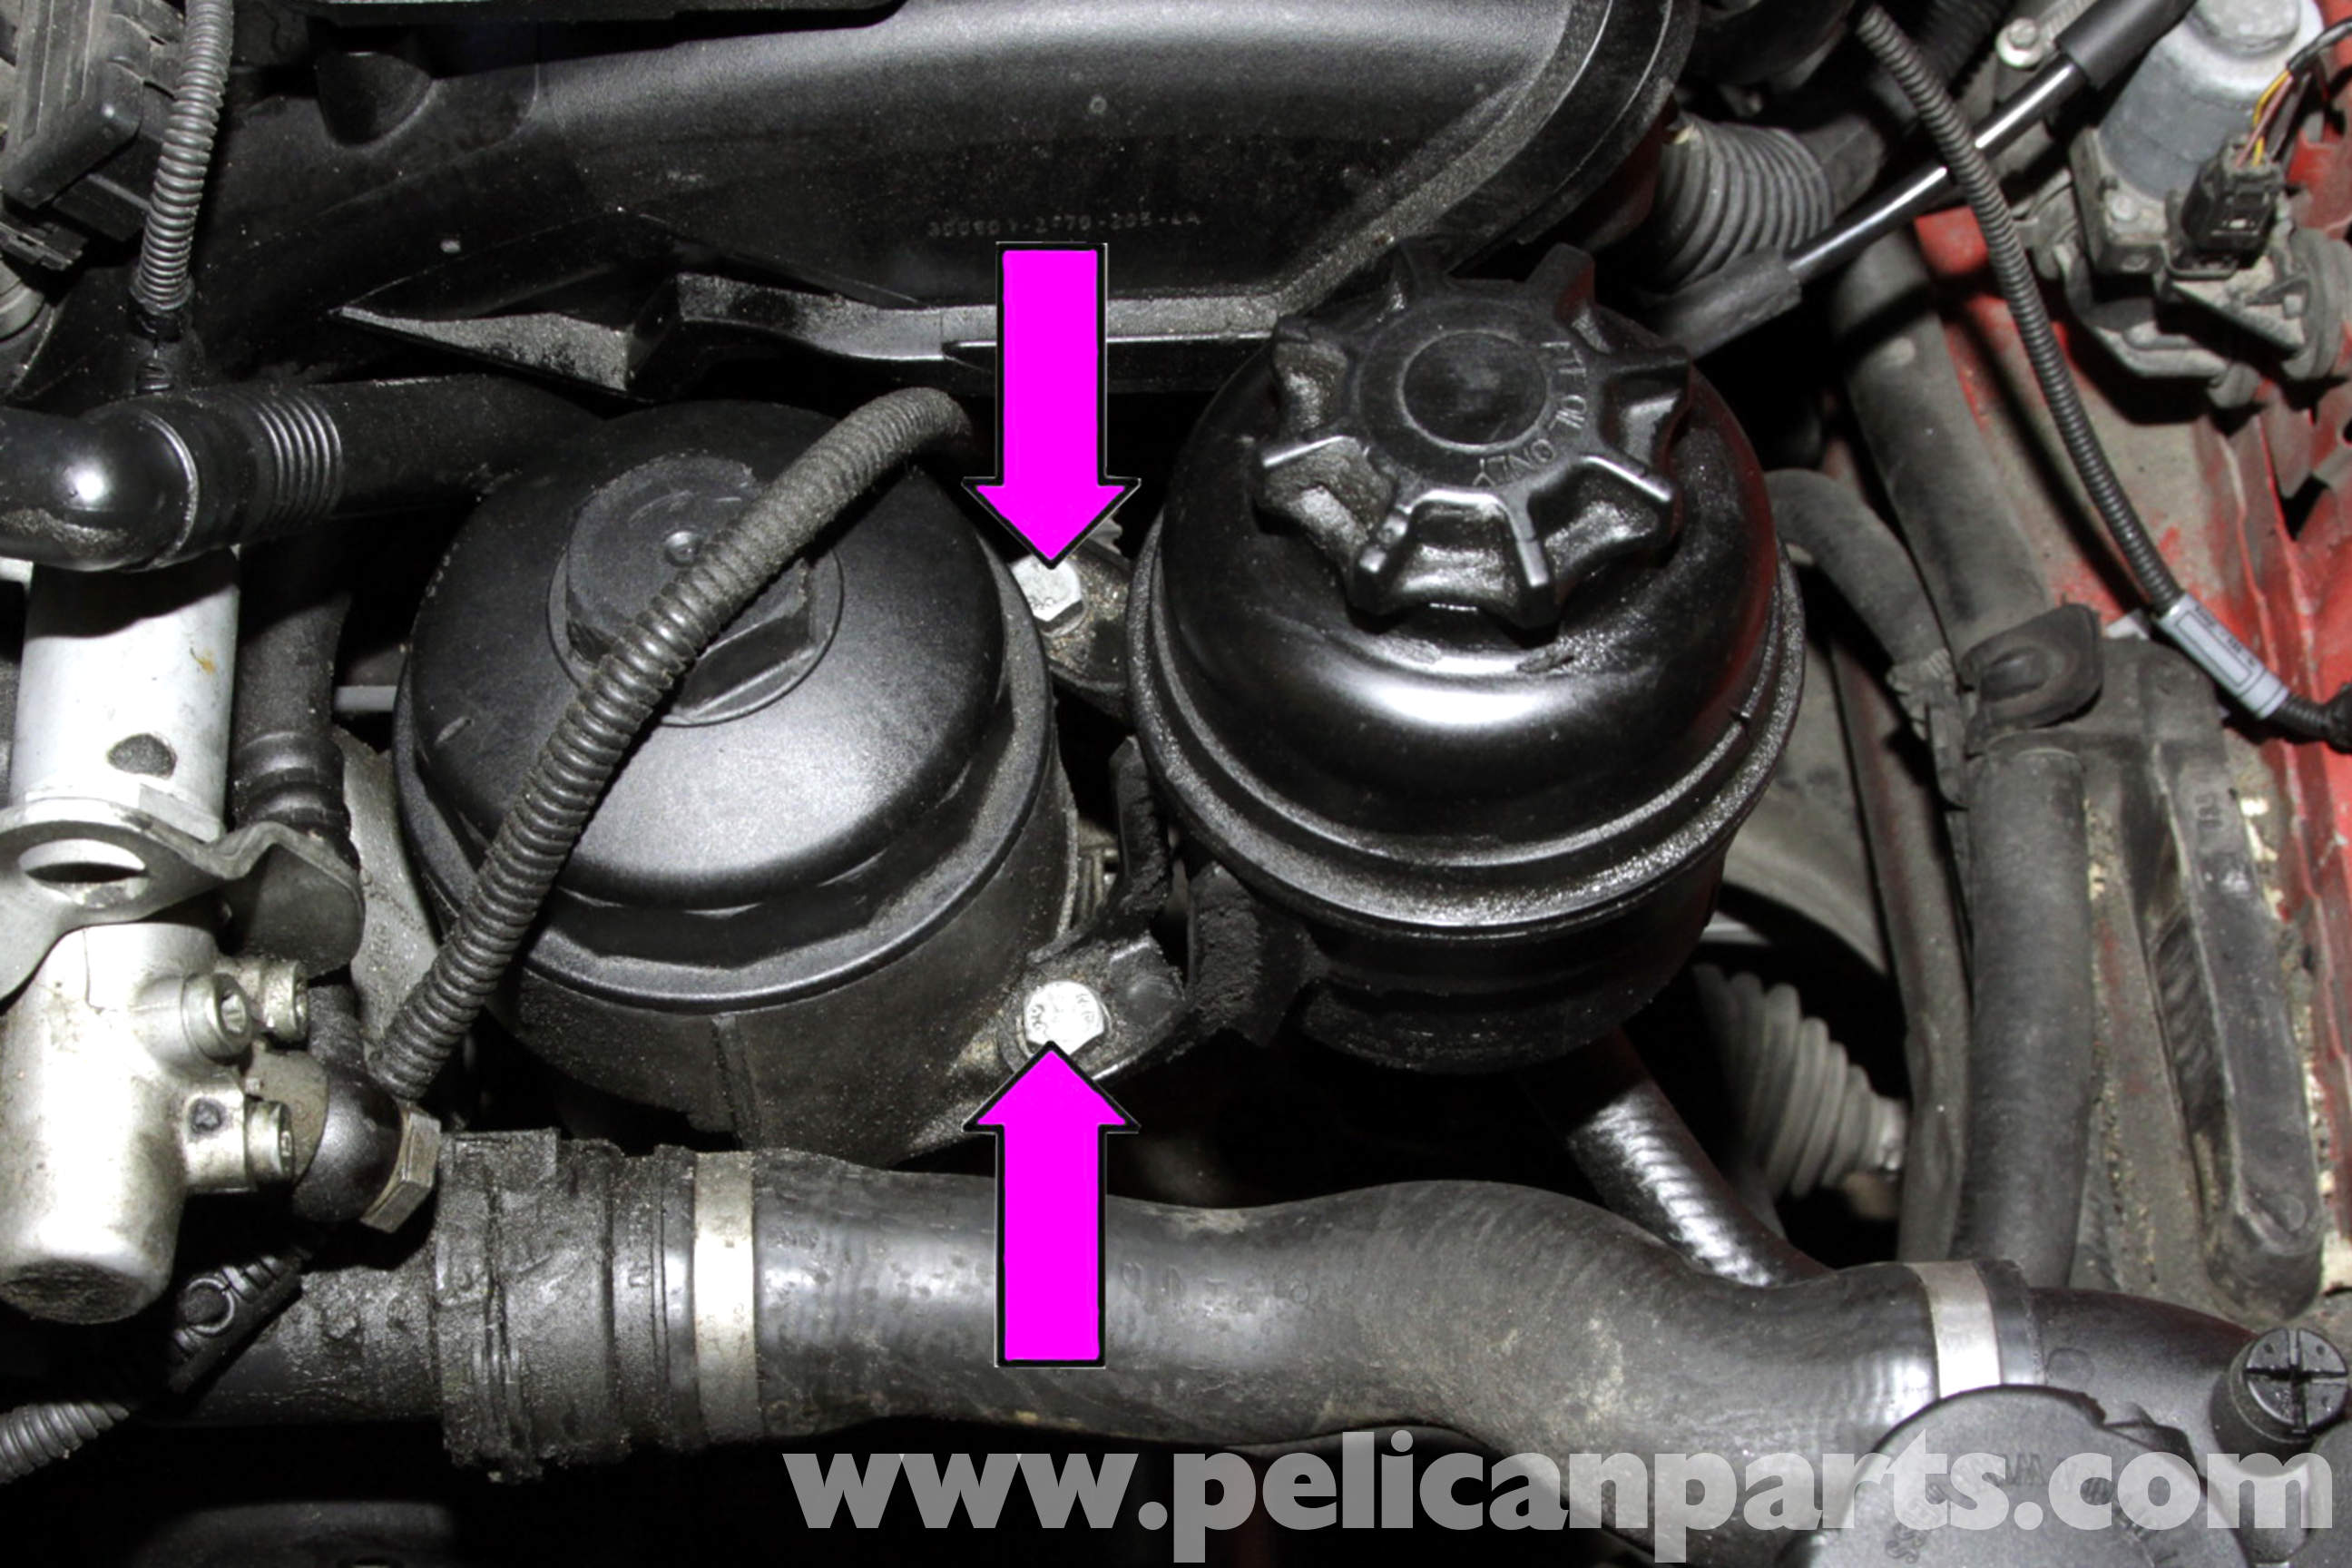 25881 Diy Pulsar 200ns Engine Oil Change together with Chevy Hhr Oil Filter Location as well K N Cabin Air Filter furthermore Symptoms Of A Bad Or Failing Variable Valve Timing Vvt Solenoid furthermore TimonandPumbaa. on tundra oil filter changing